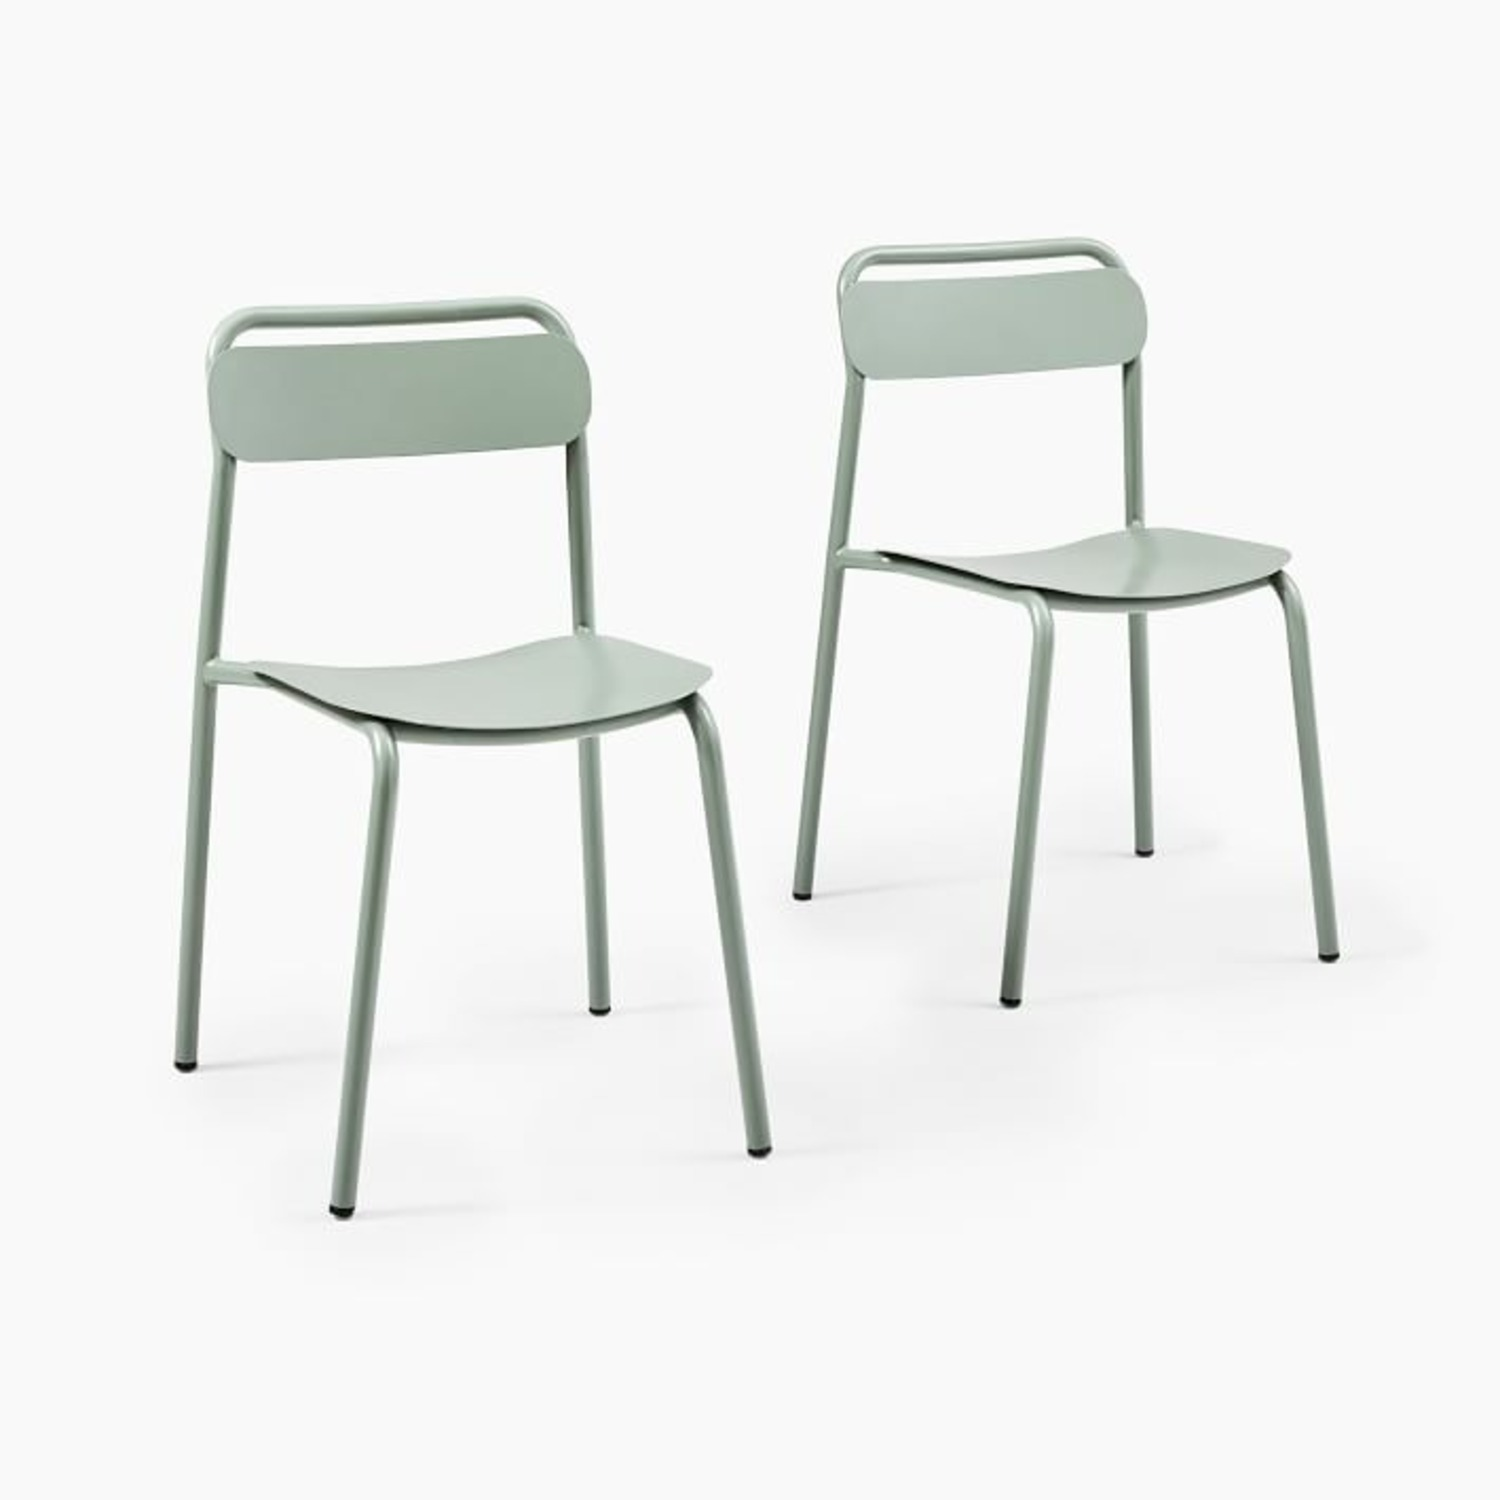 West Elm Outdoor Metal Stacking Chair (Set of 2) - image-1